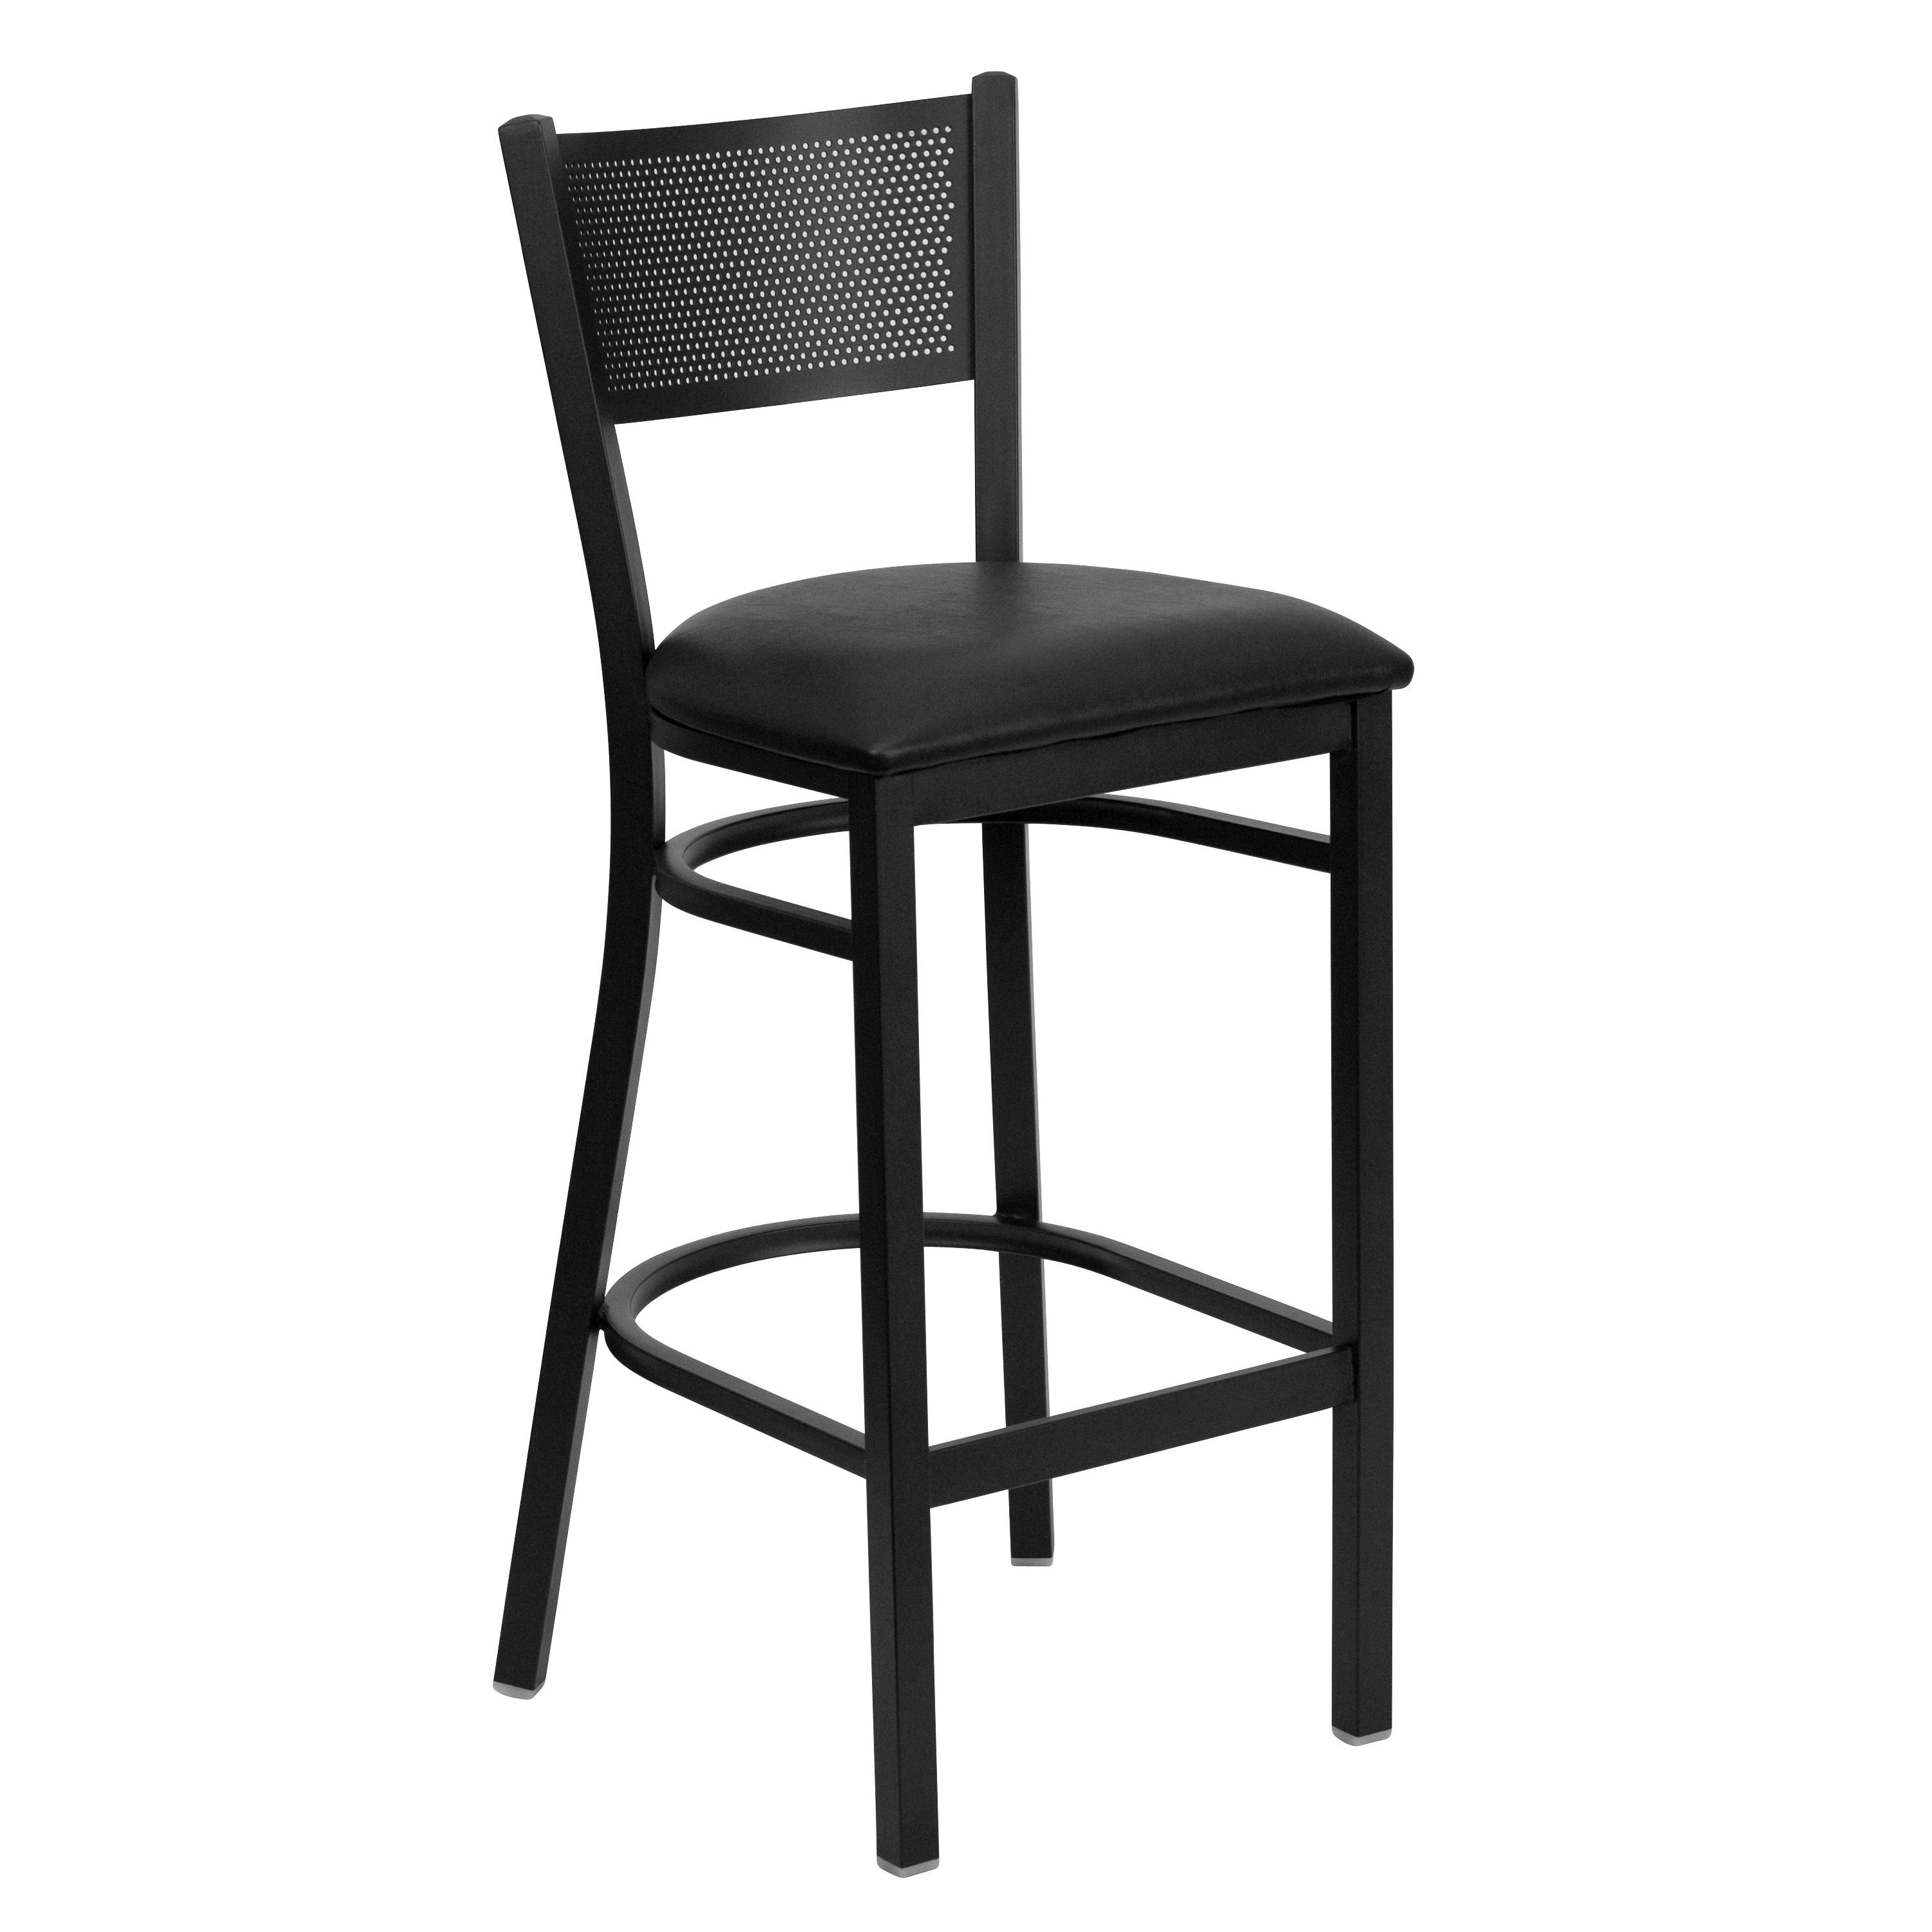 Flash Furniture XU-DG-60116-GRD-BAR-BLKV-GG Grid Back Black Metal Restaurant Barstool with Black Vinyl Seat